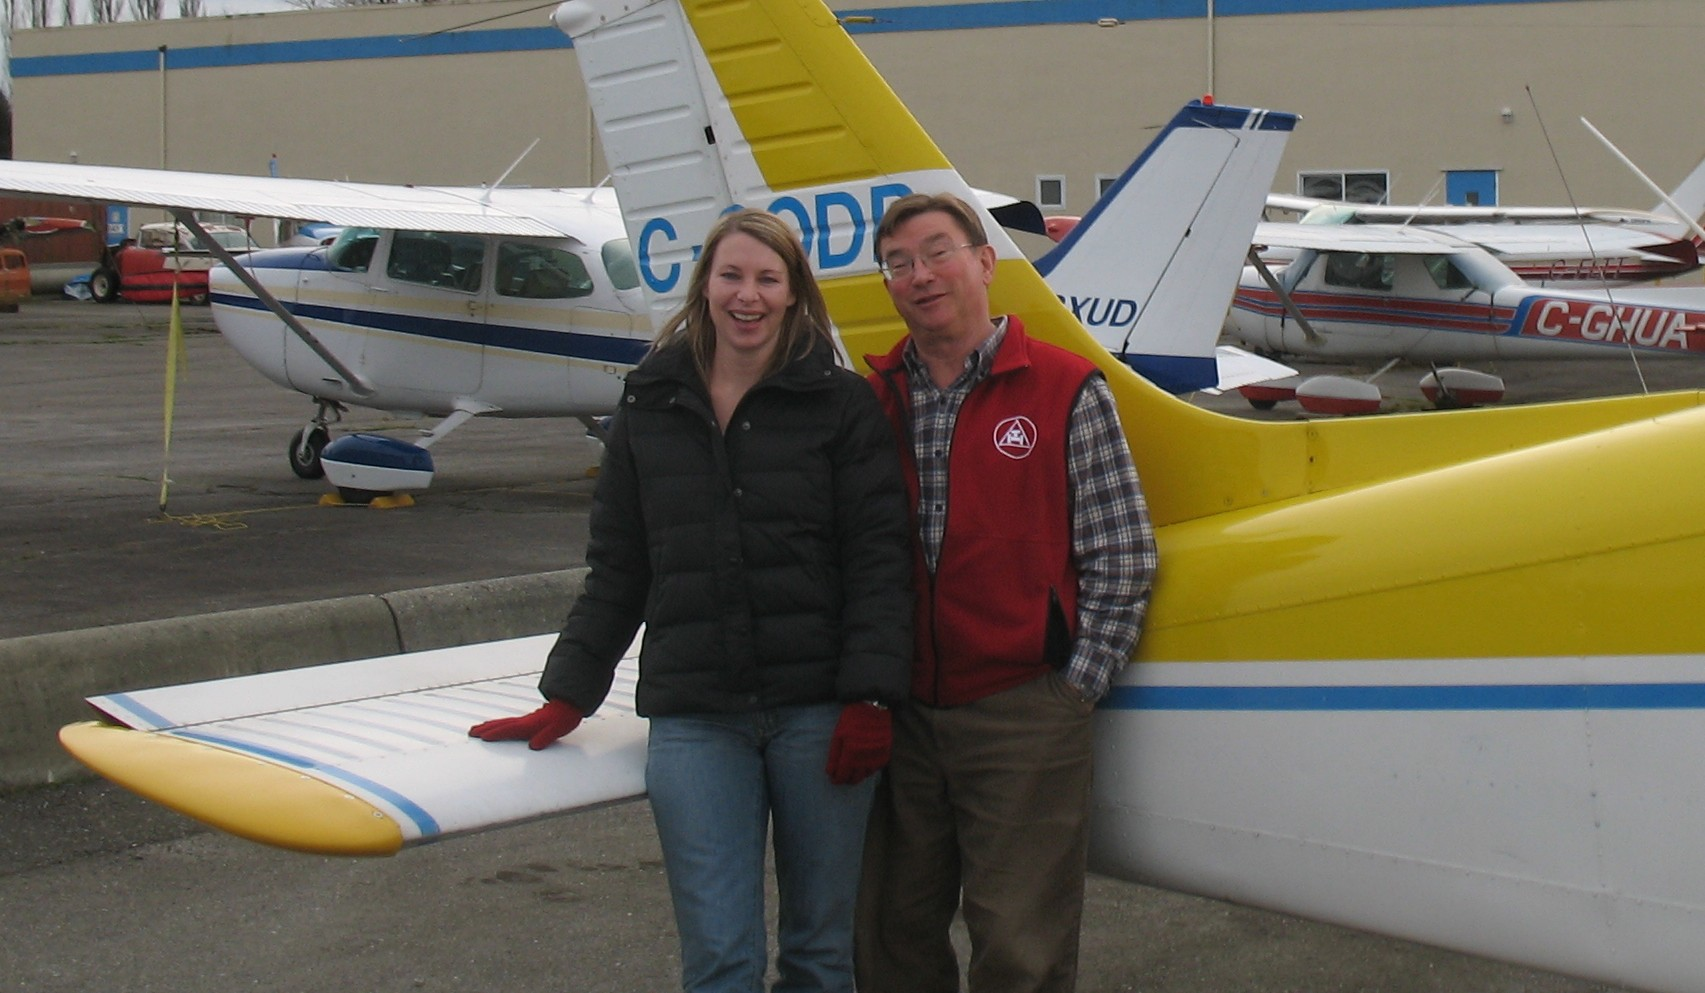 Christine Zboyousky with Pilot Examiner John Laing after the successful completion of Christine's Private Pilot Flight Test on January 7, 2010.  Langley Flying School.